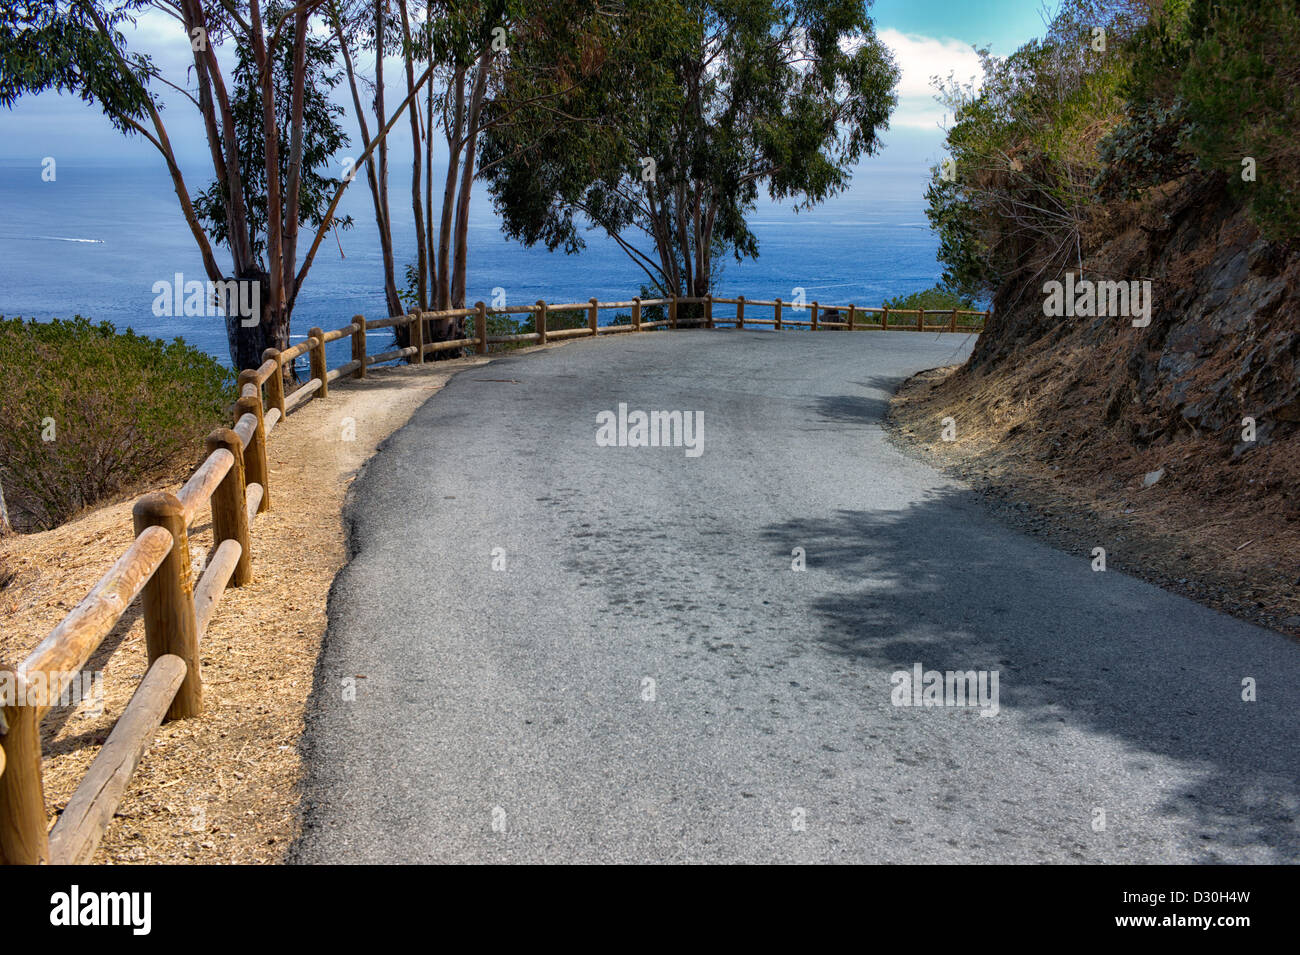 Road around Catalina Island, California - Stock Image